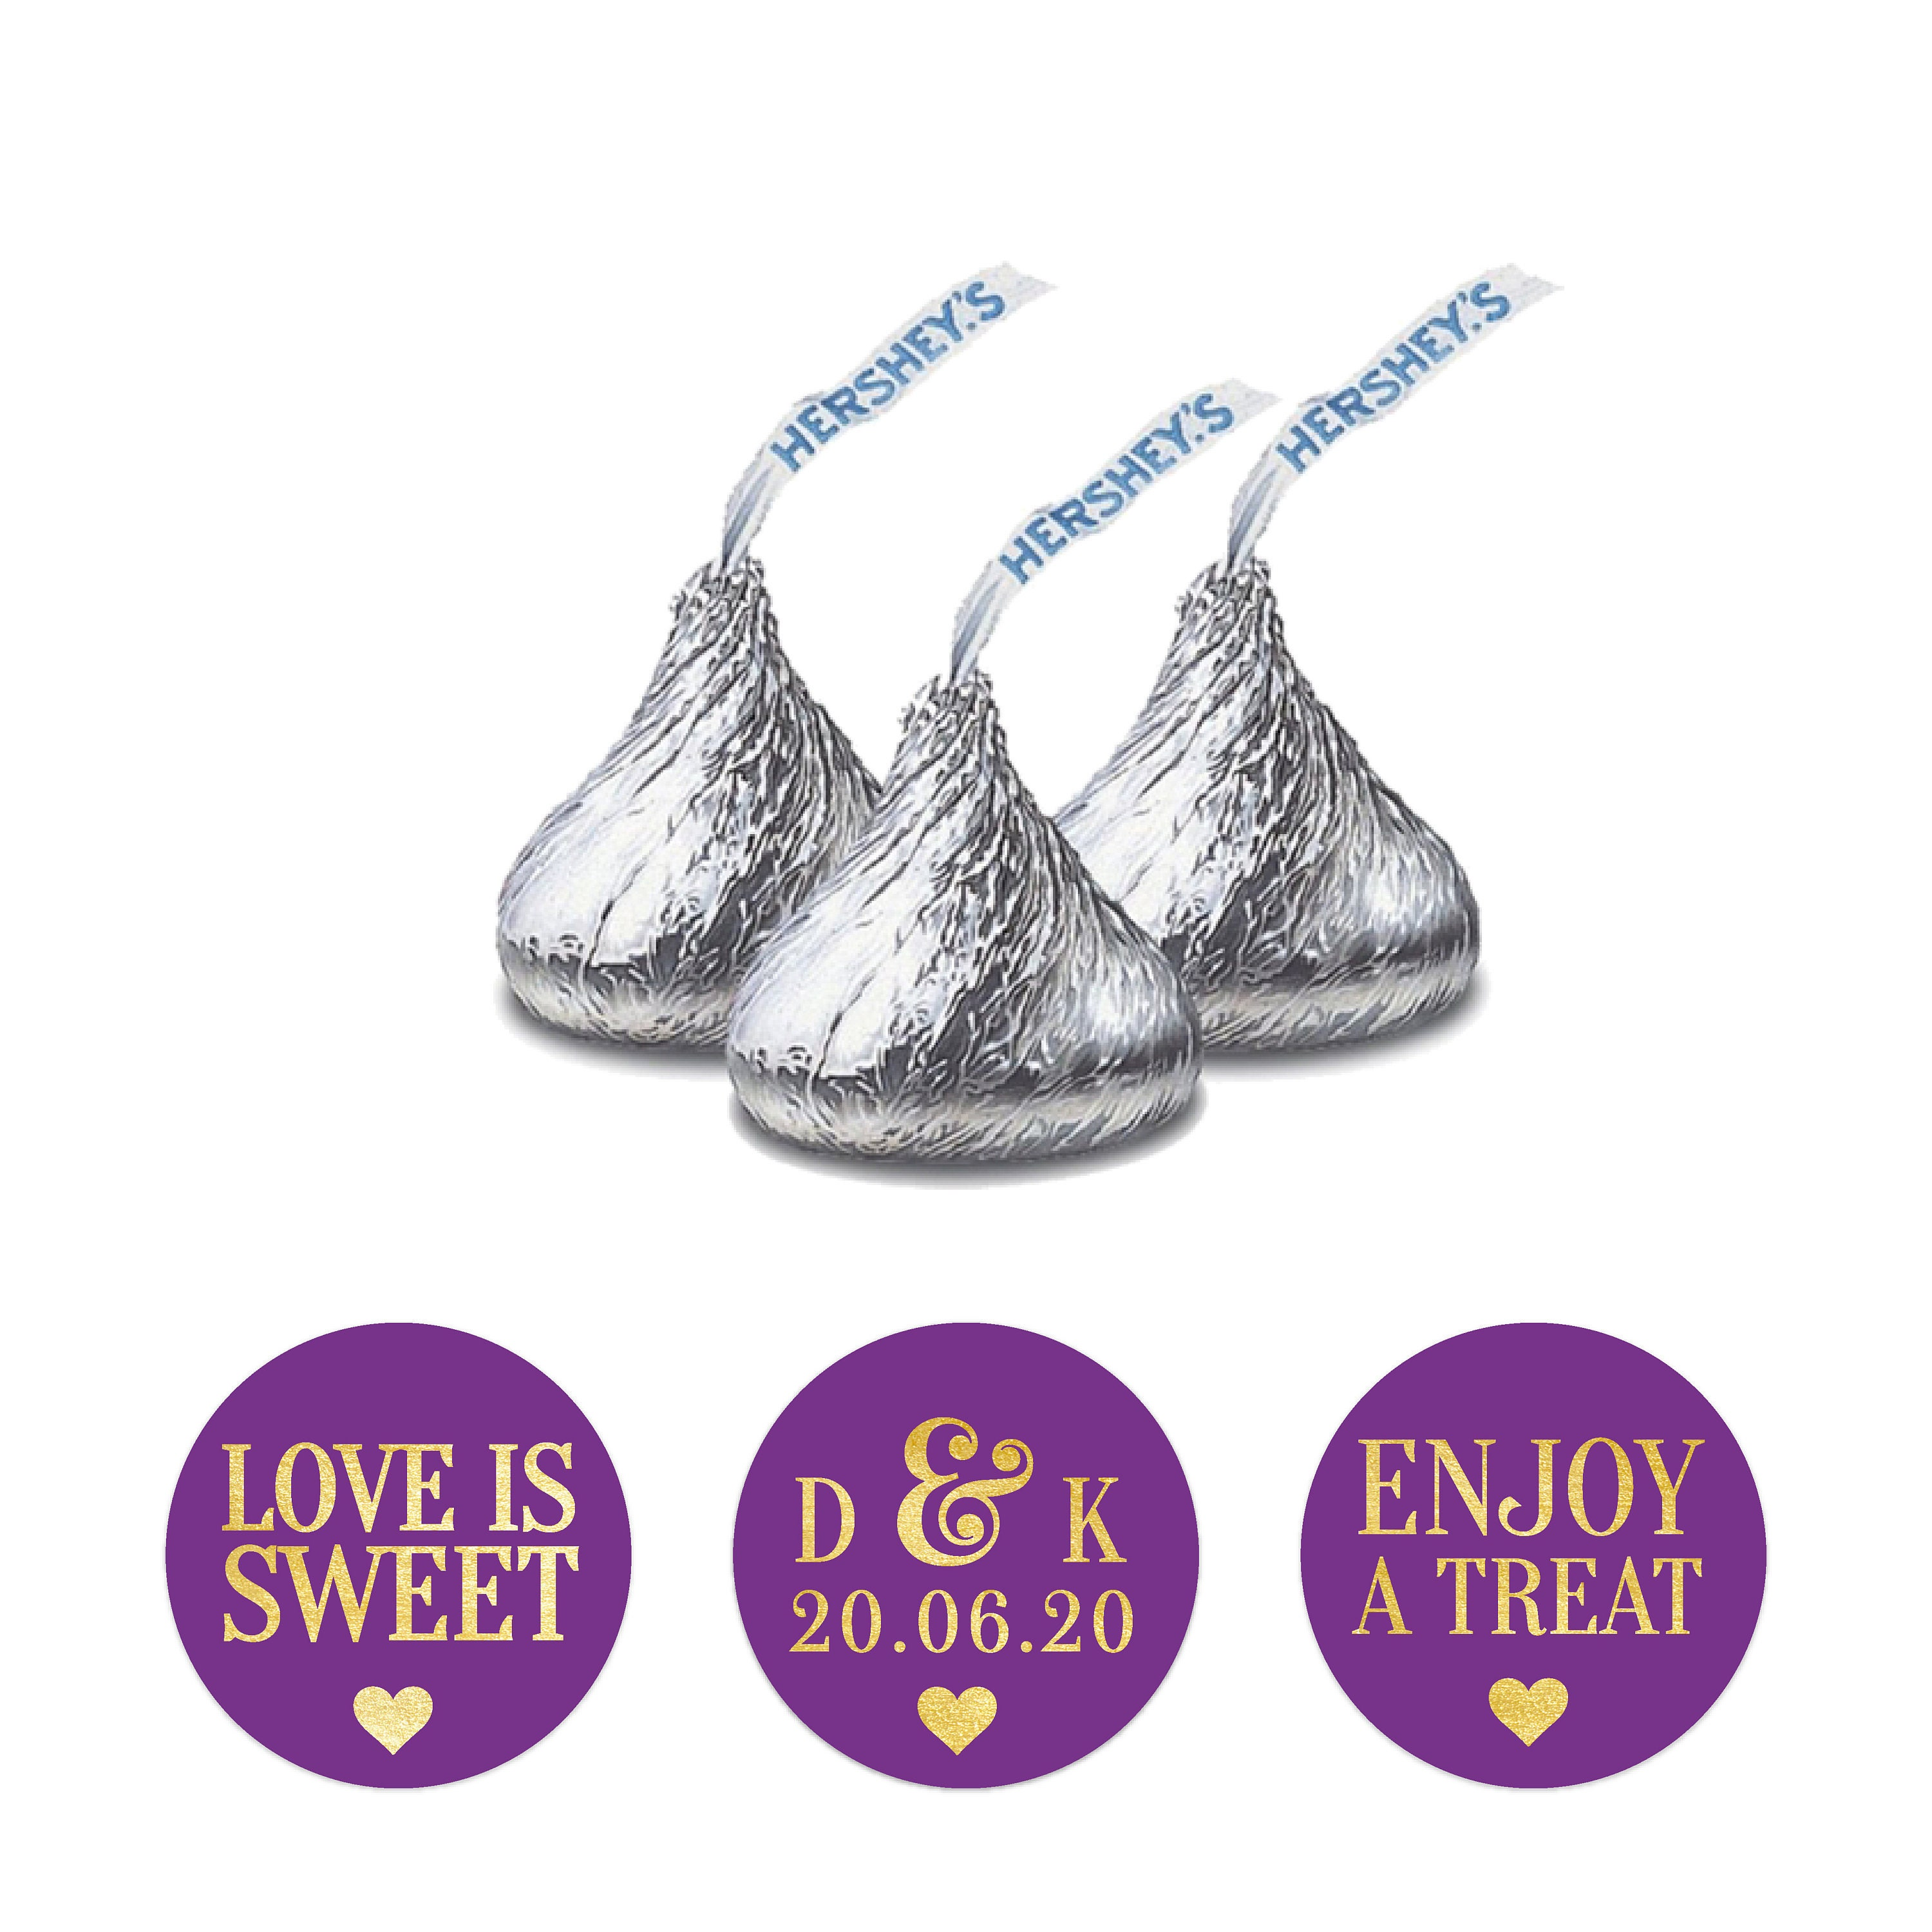 117 Custom stickers, Cute stickers, Hershey kisses personalized ...